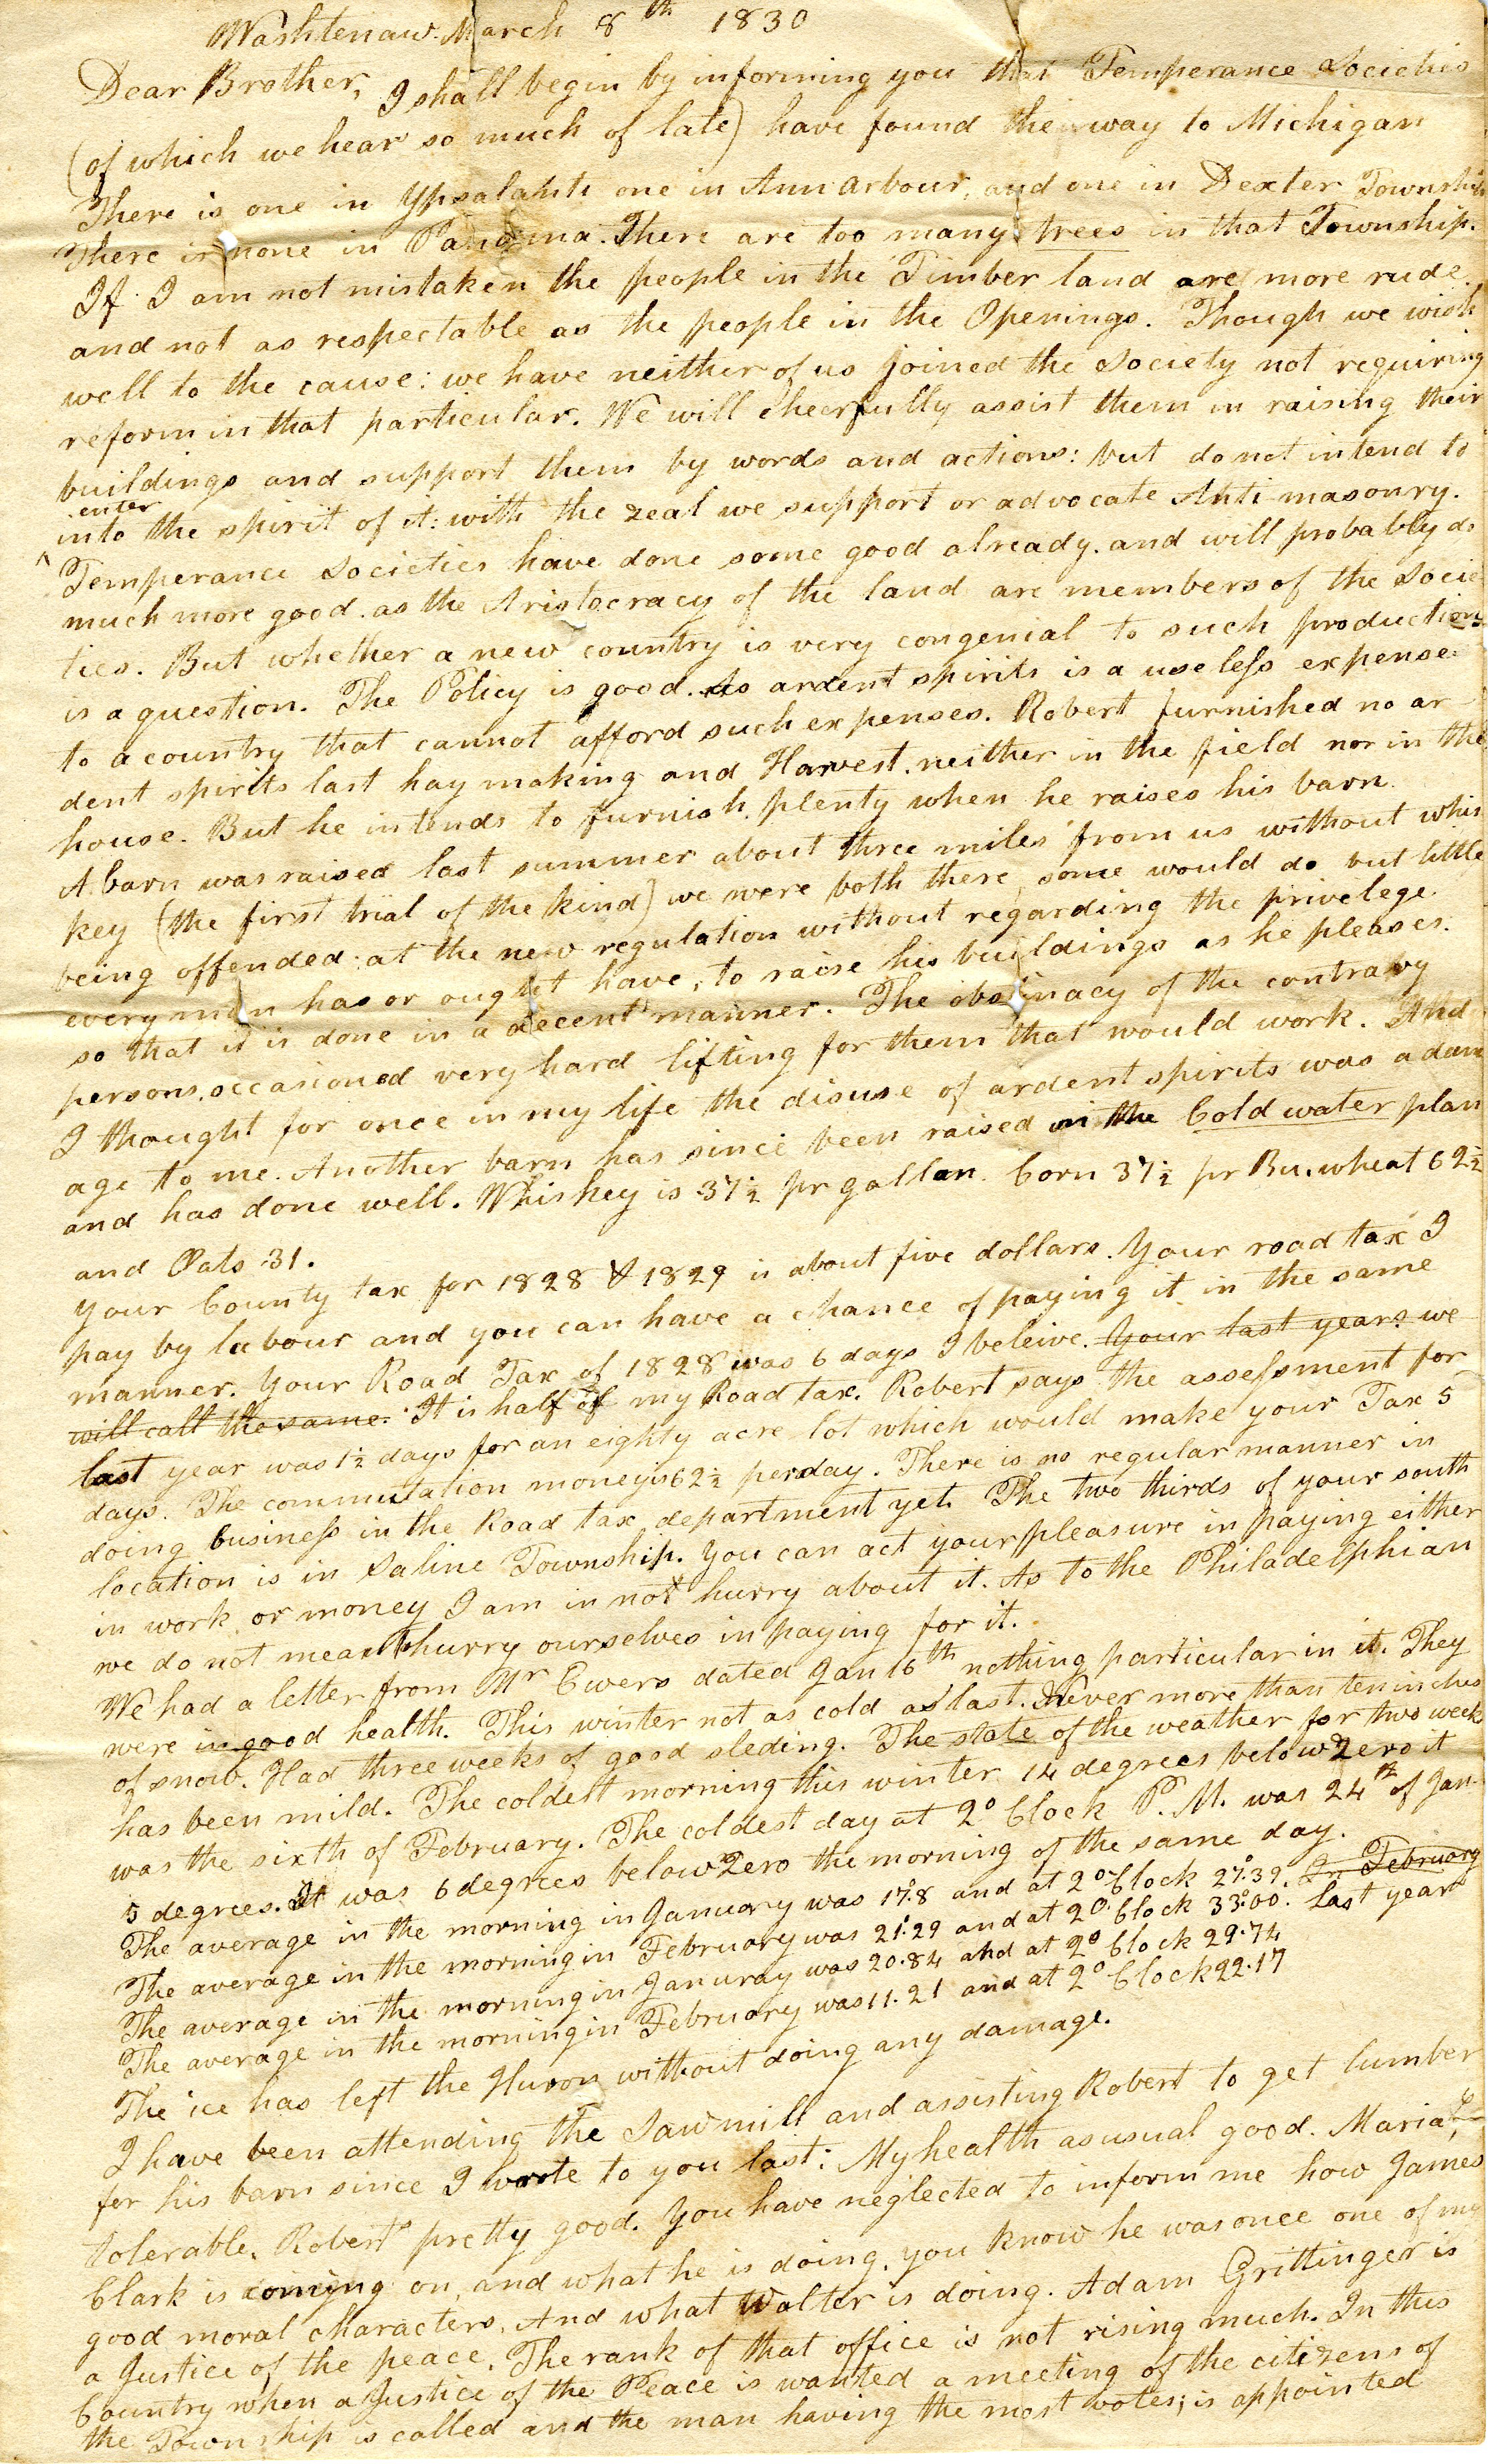 Letter From John Geddes to William Geddes, March 8, 1830 image